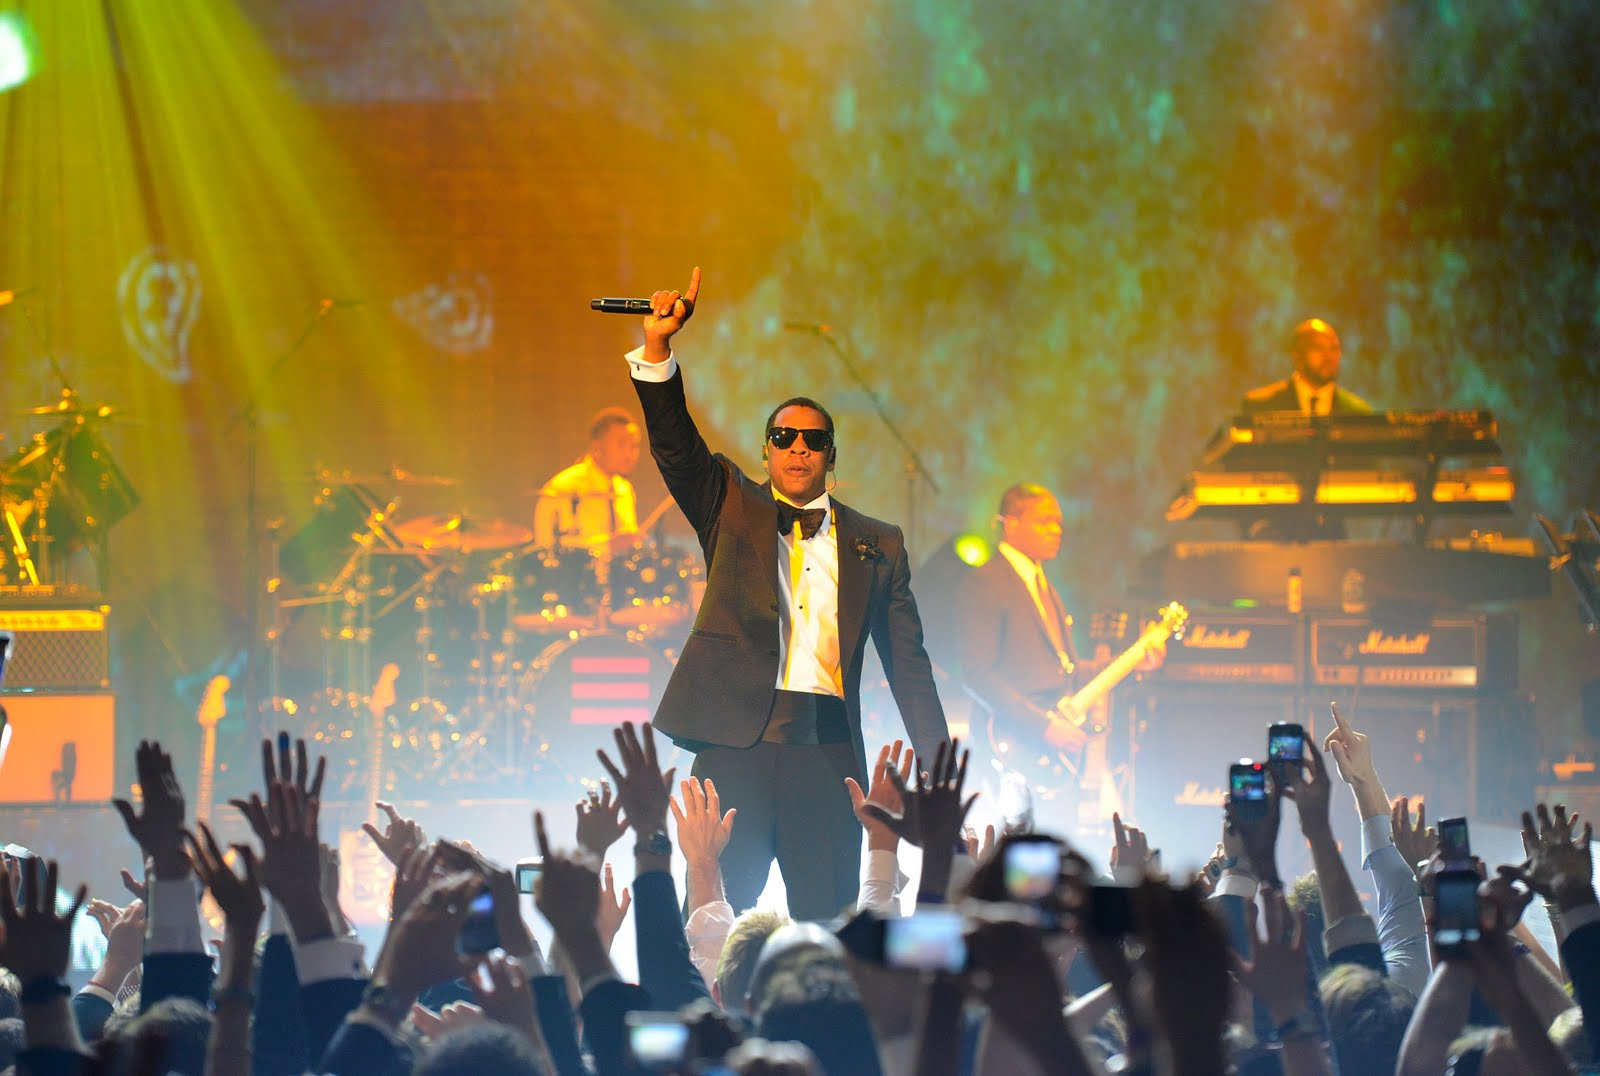 http://3.bp.blogspot.com/_Wplv5-05z-c/TSEnzQiG6kI/AAAAAAAABsM/TdqQGrfVEco/s1600/image-1---jay-z-performs-at-the-cosmopolitan-of-las-vegas--new-years-eve-and-grand-opening-celebration.-credit-ethan-miller-wireimage-1293936537.jpg